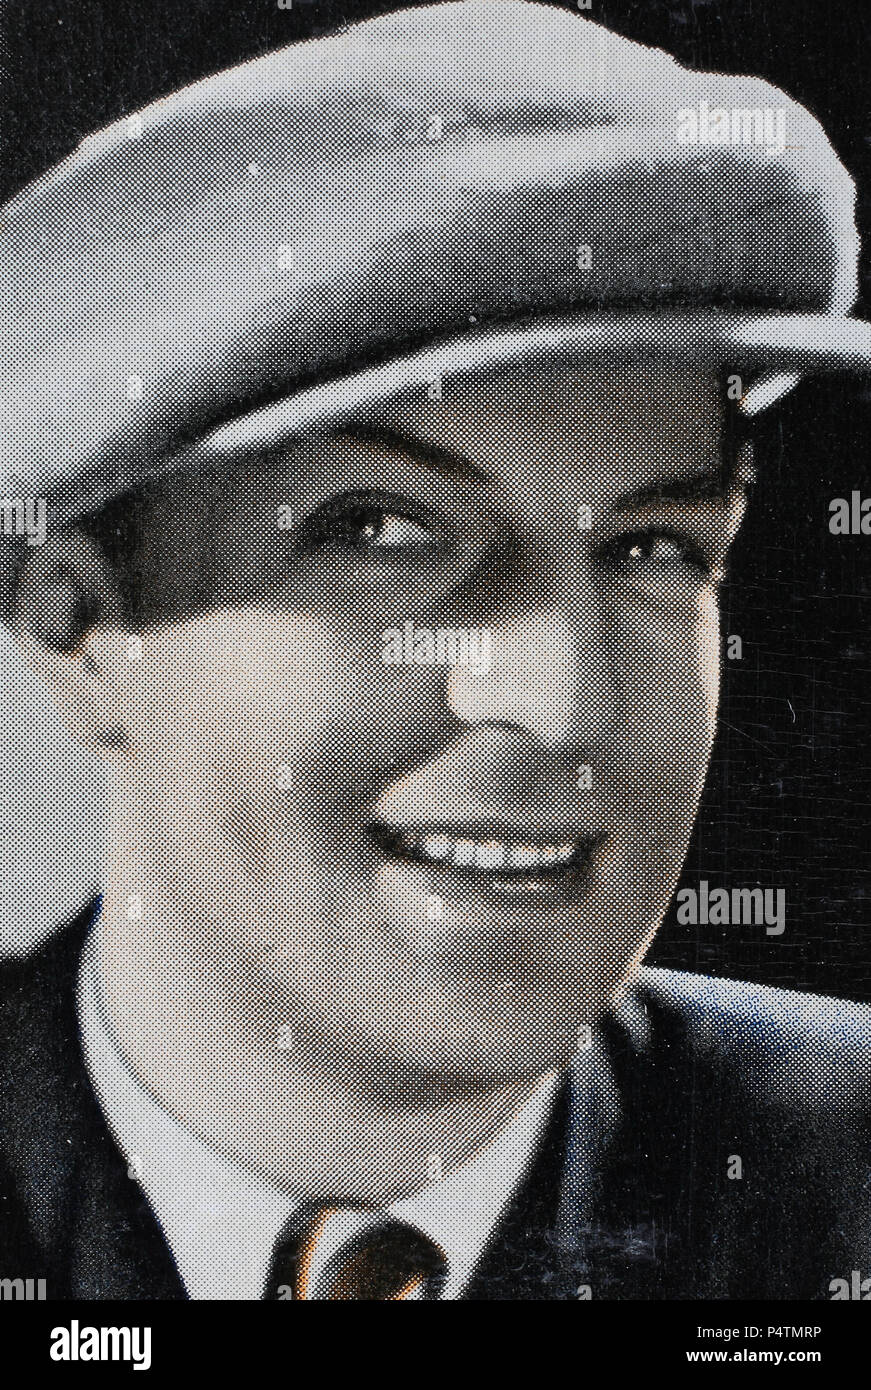 Viktor de Kowa, also spelled Victor de Kowa, born Victor Paul Karl Kowalczyk (8 March 1904 – 8 April 1973) was a German stage and film actor, chanson singer, director, narrator and comic poet., digital improved reproduction of an historical image - Stock Image